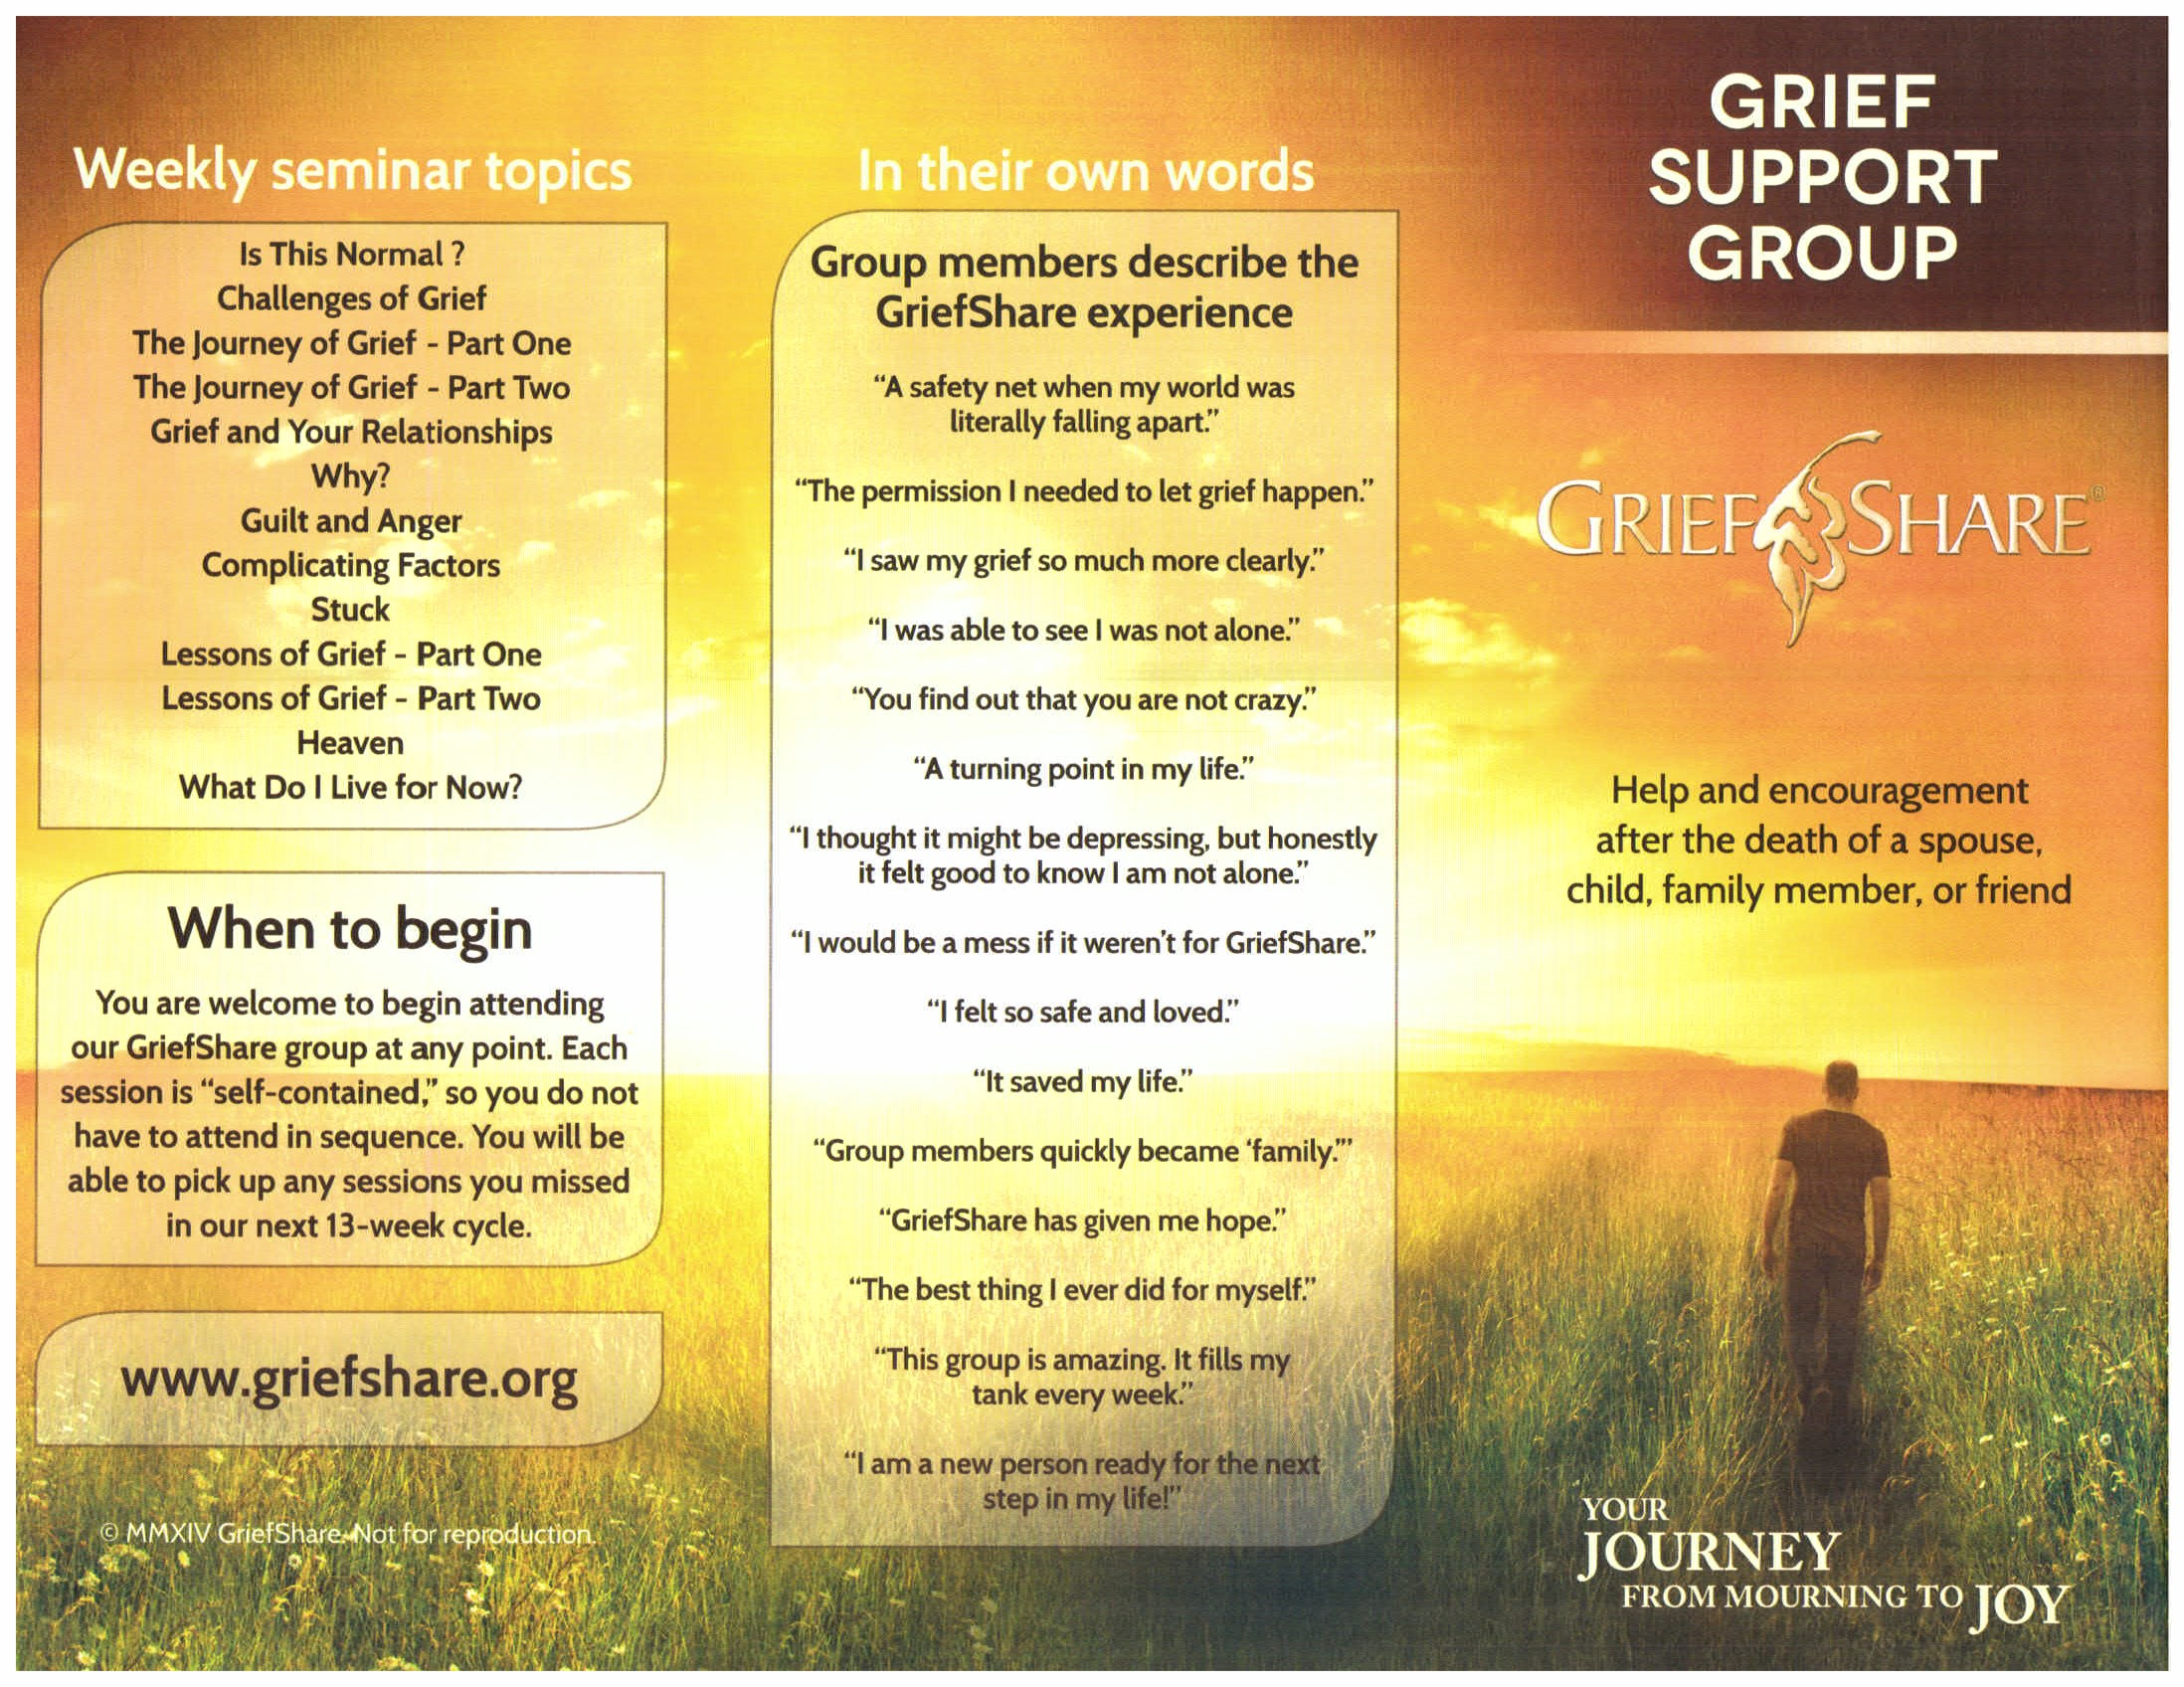 griefshare advertsement page 2 2